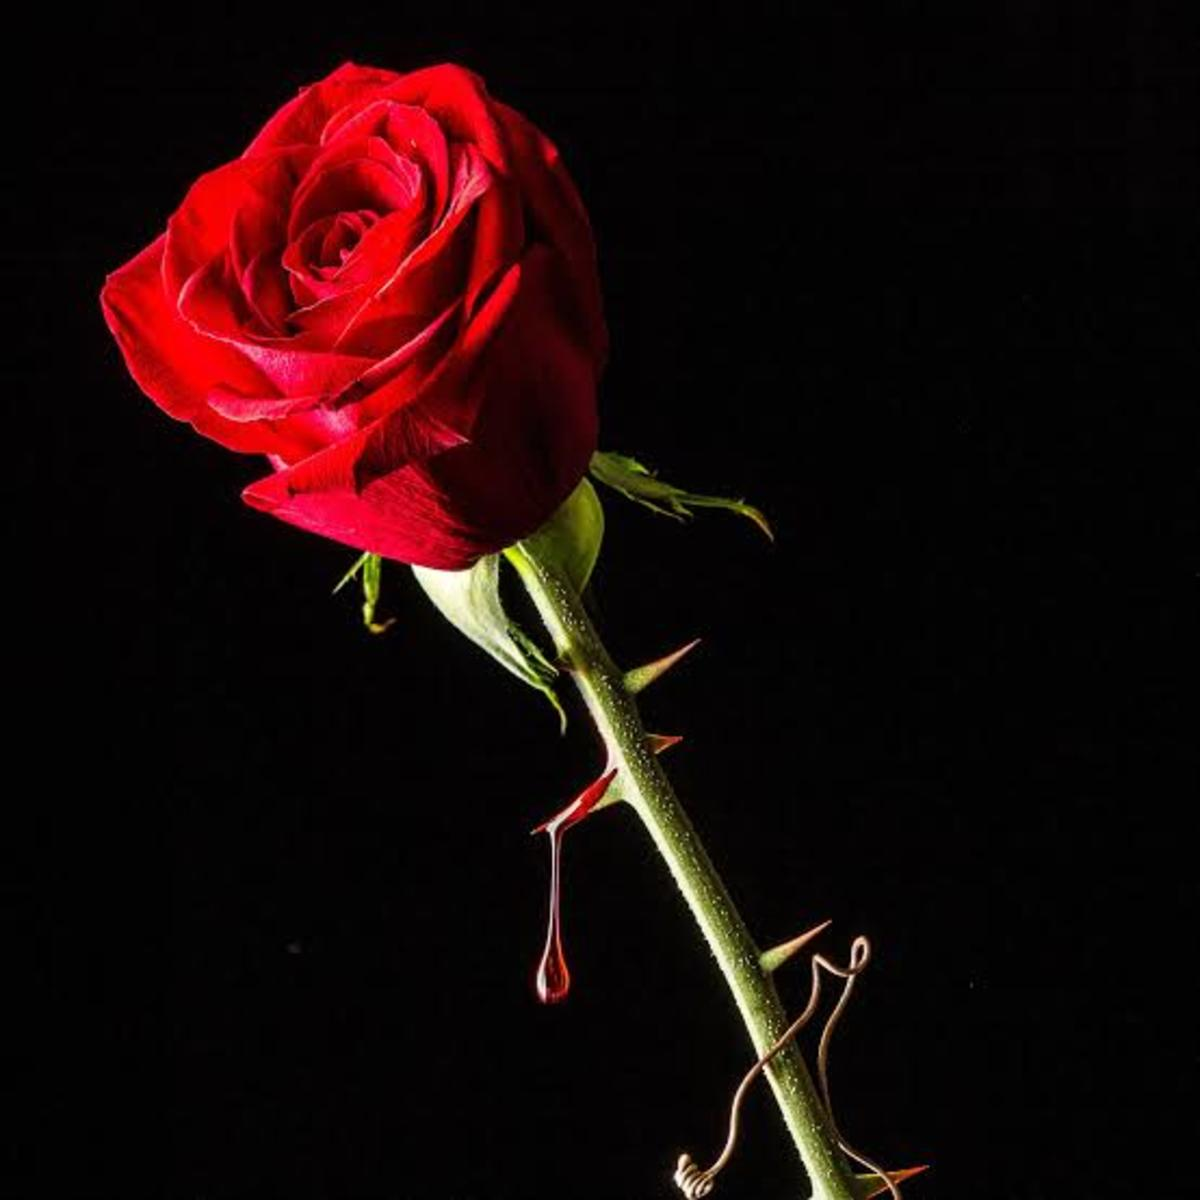 Life is a bed roses, but roses have thorns.